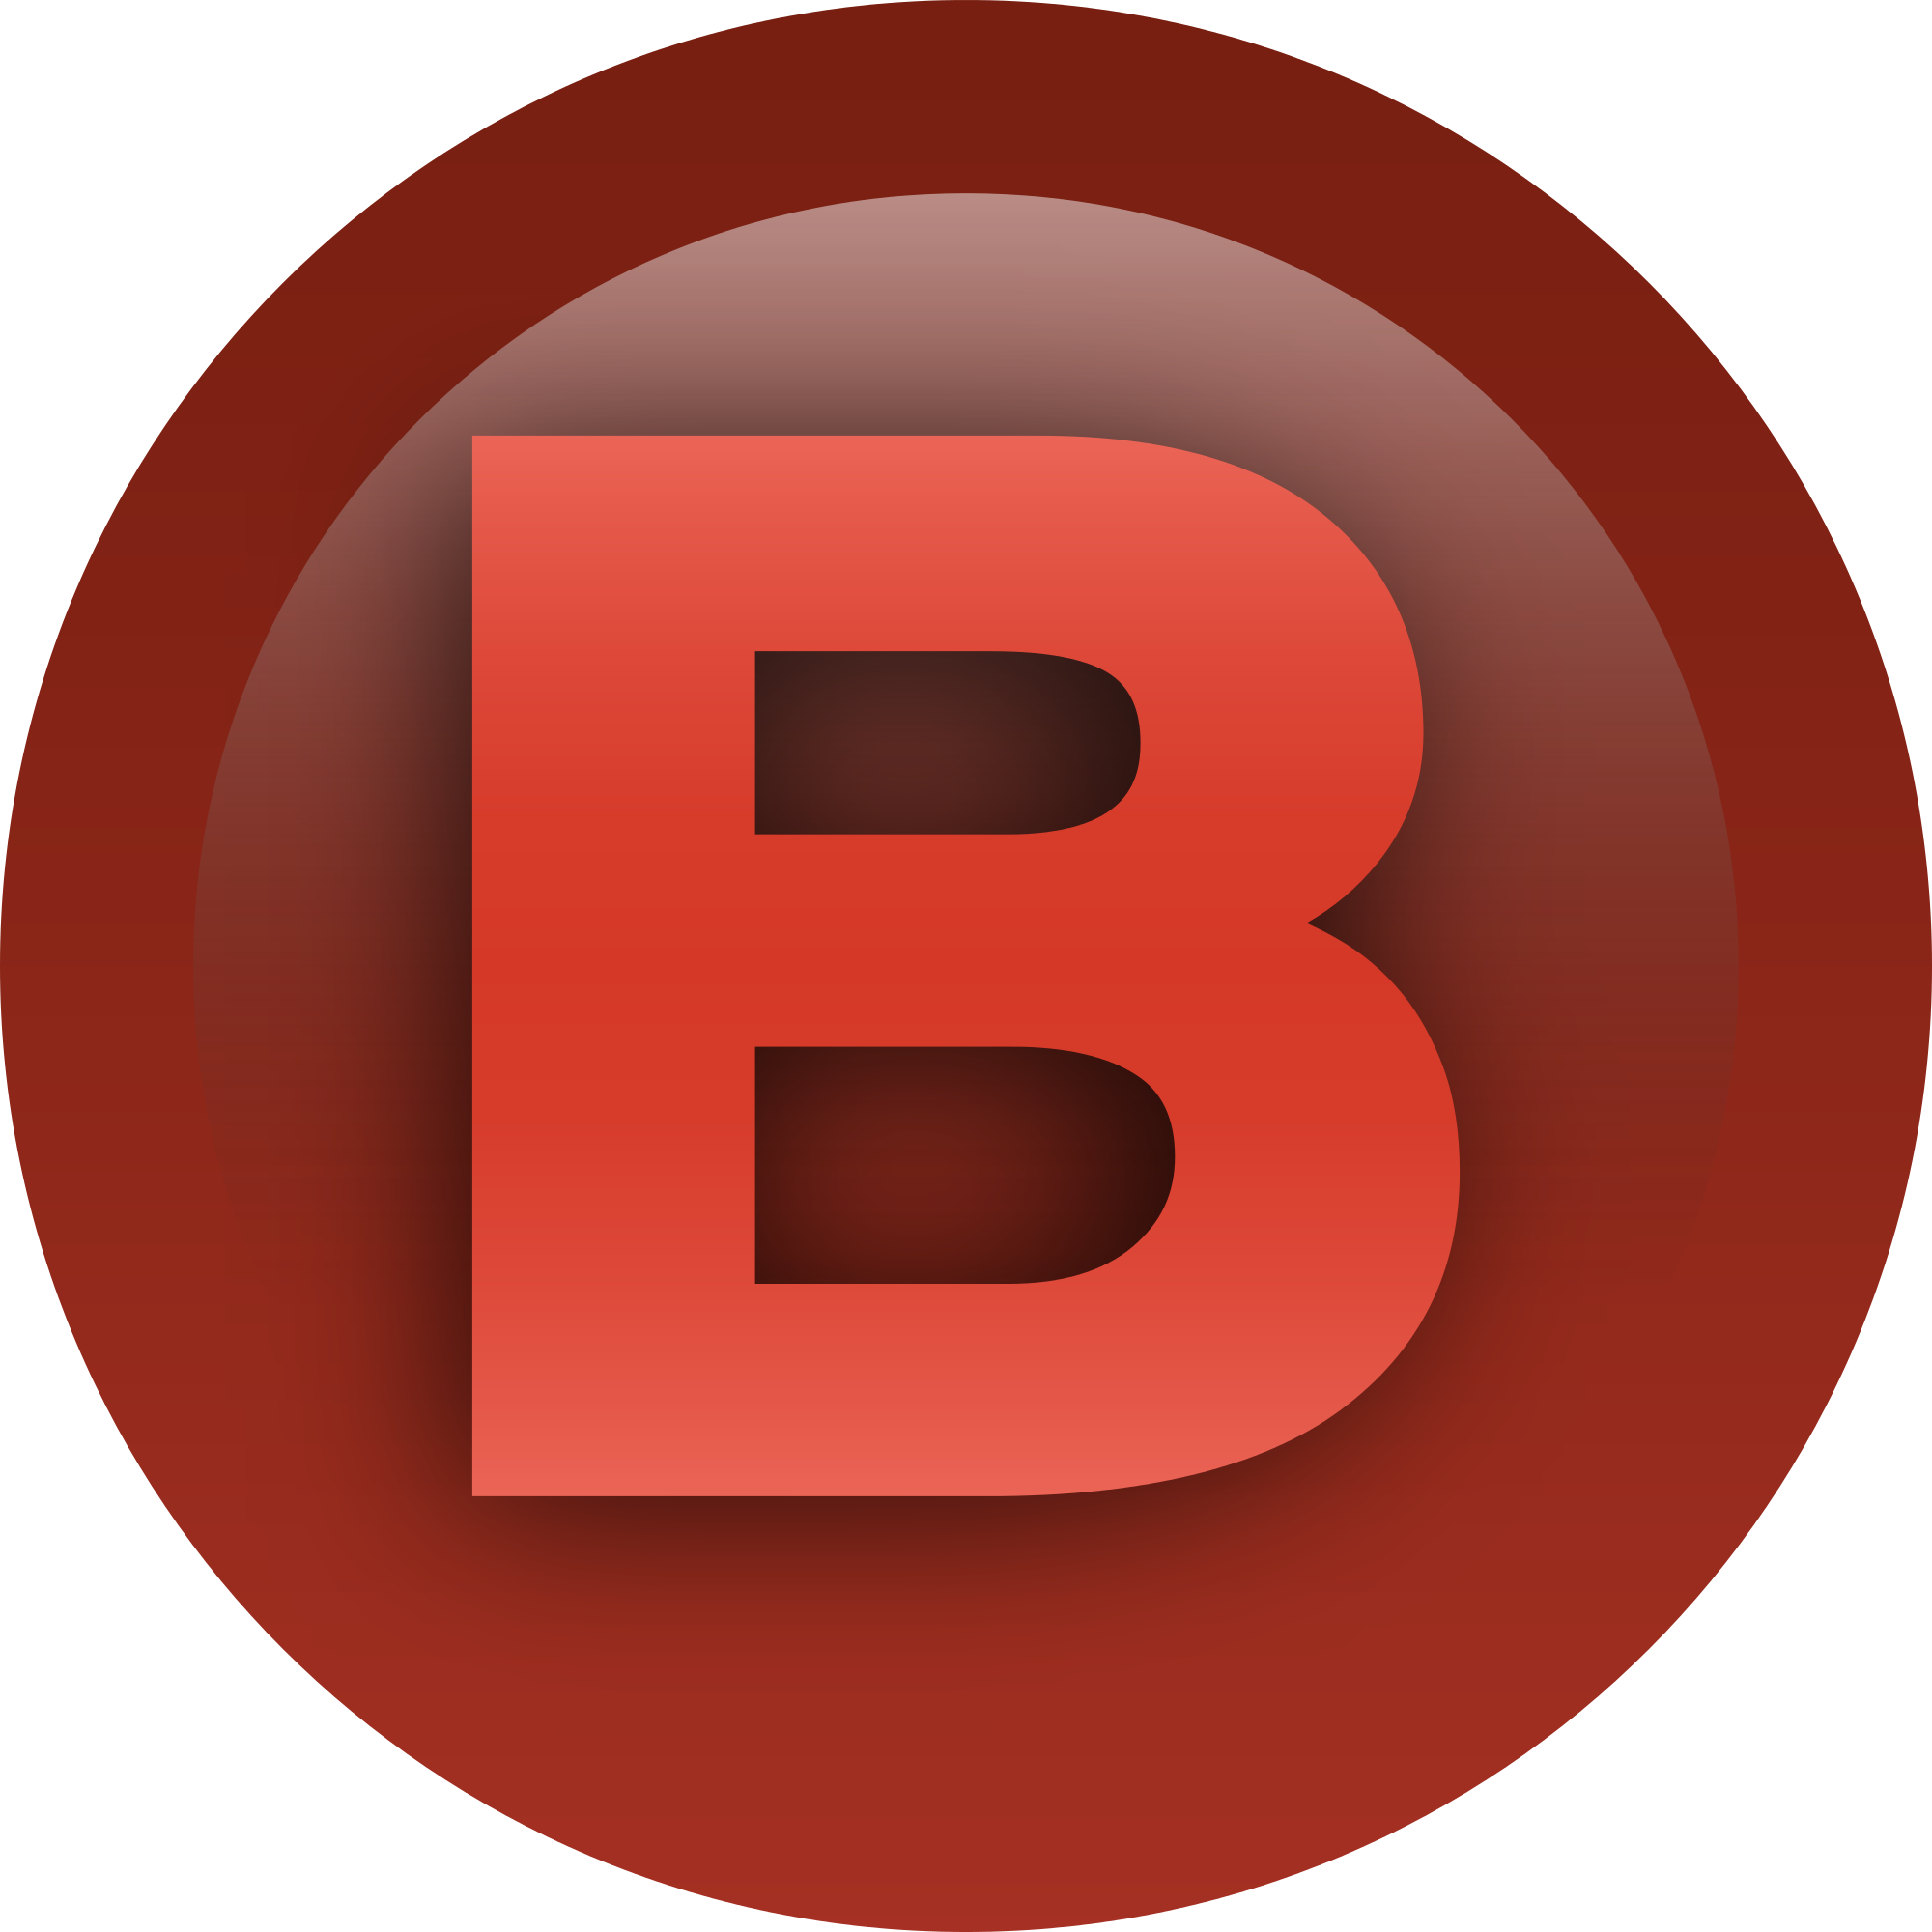 Xbox buttons png. File button b svg